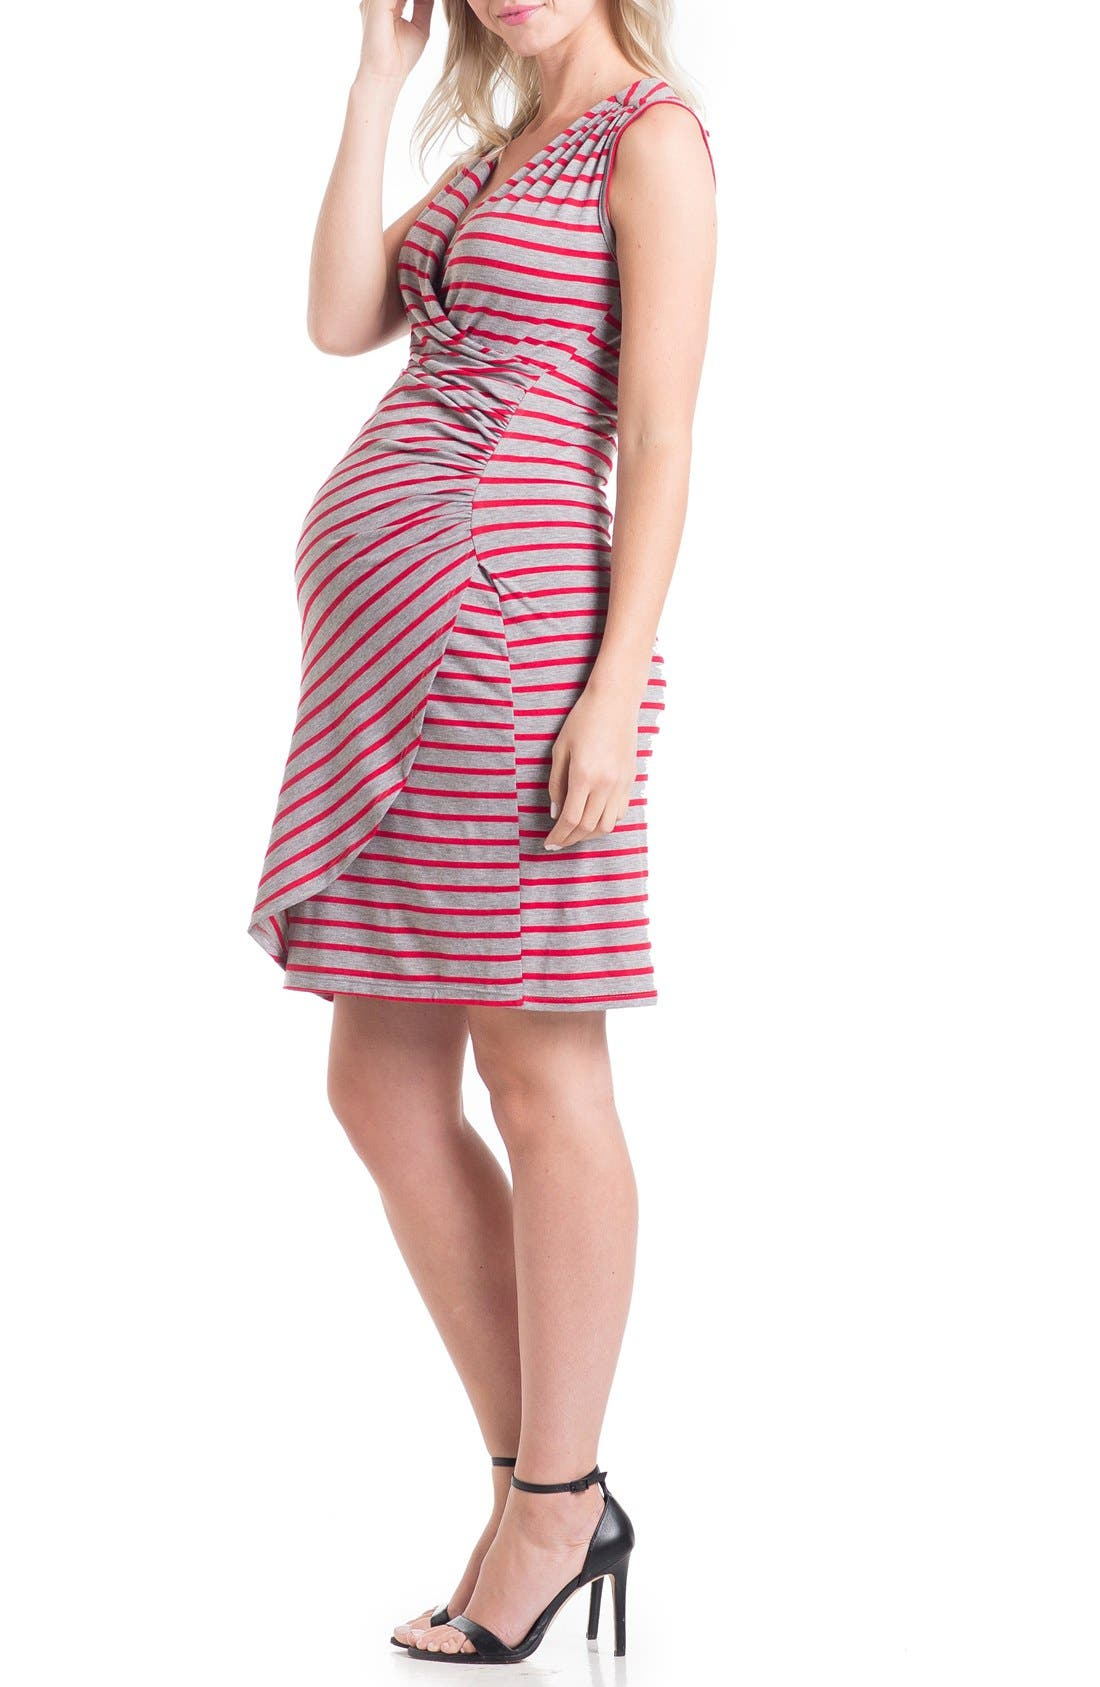 Lilac Clothing 'Brynley' Surplice Maternity Dress